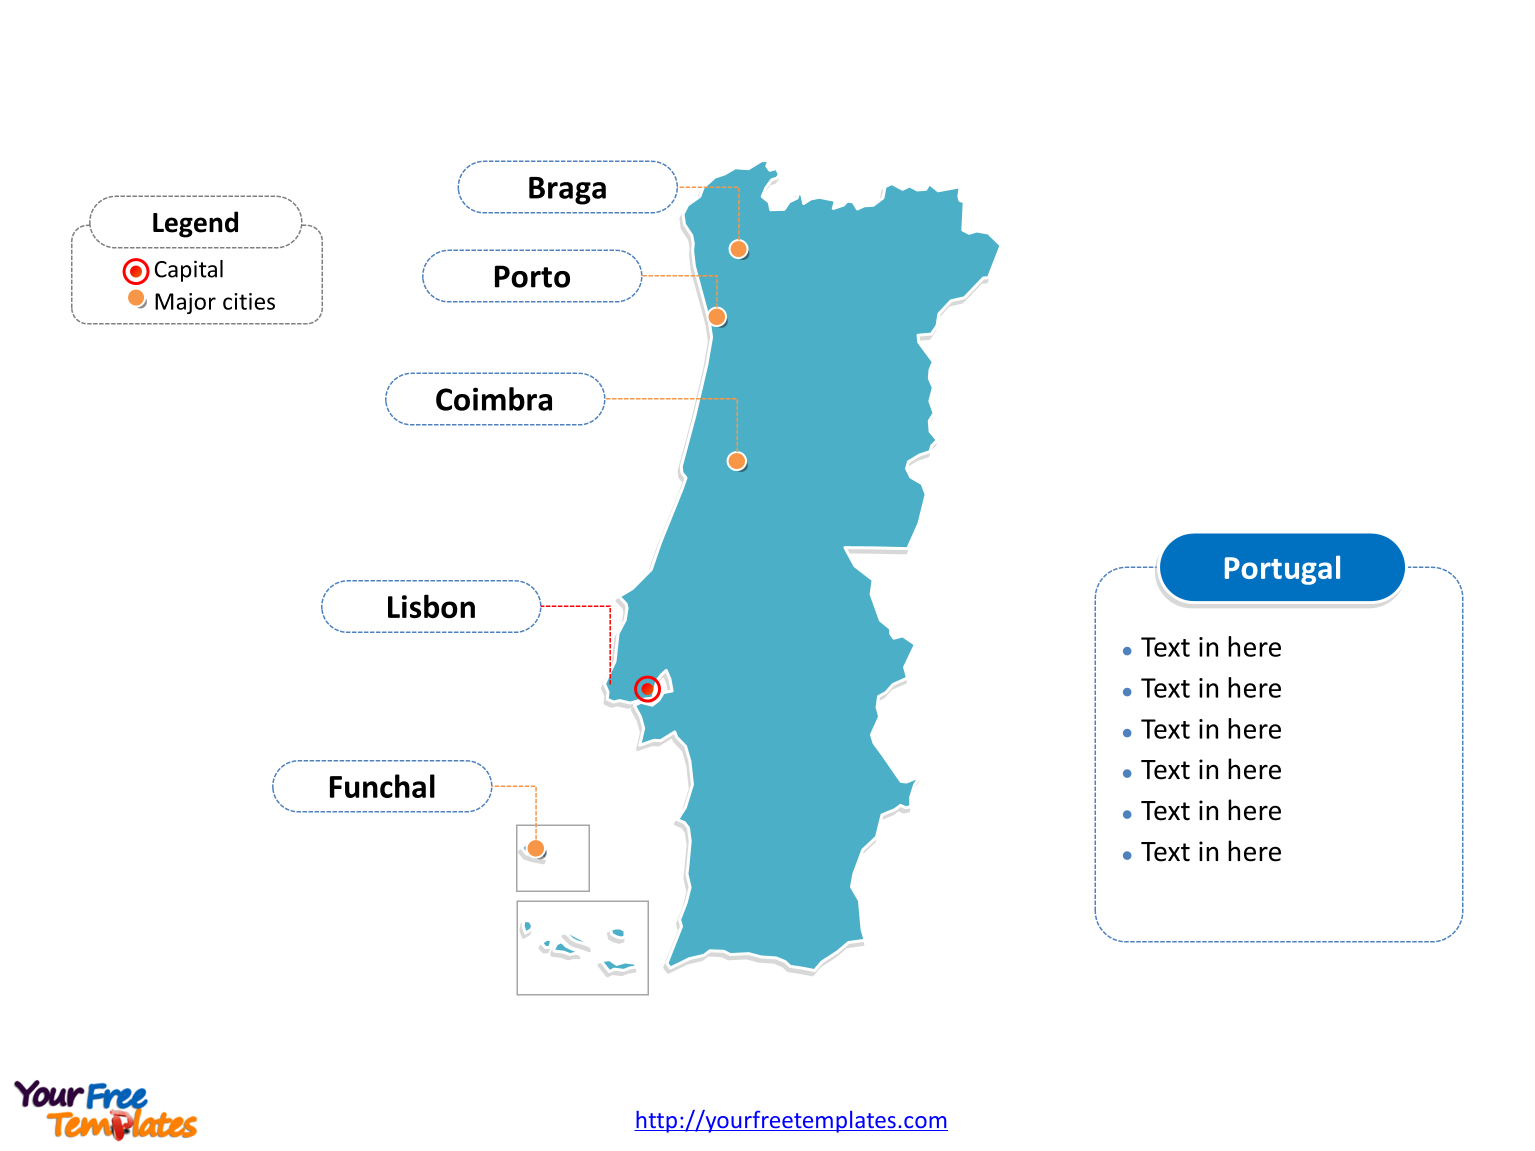 Portugal Outline map labeled with cities